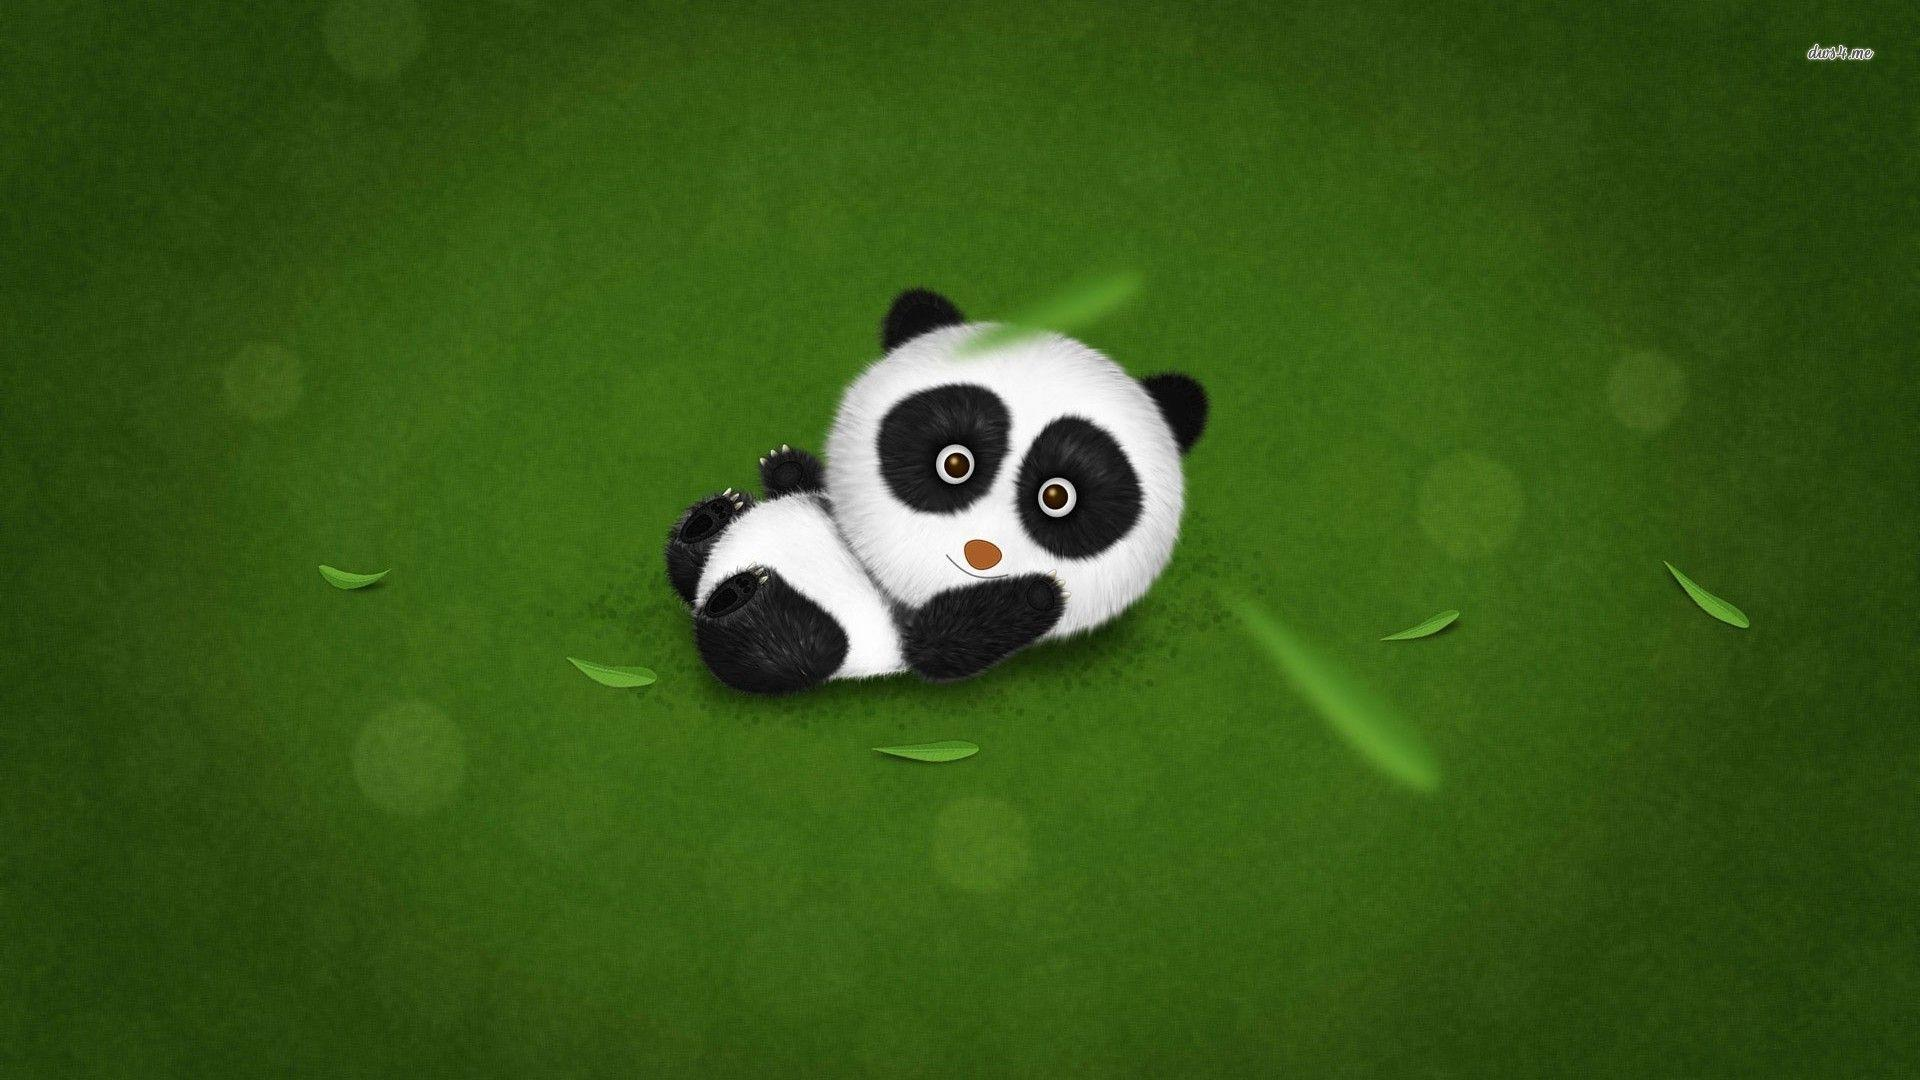 Baby Panda Wallpapers 1920x1080